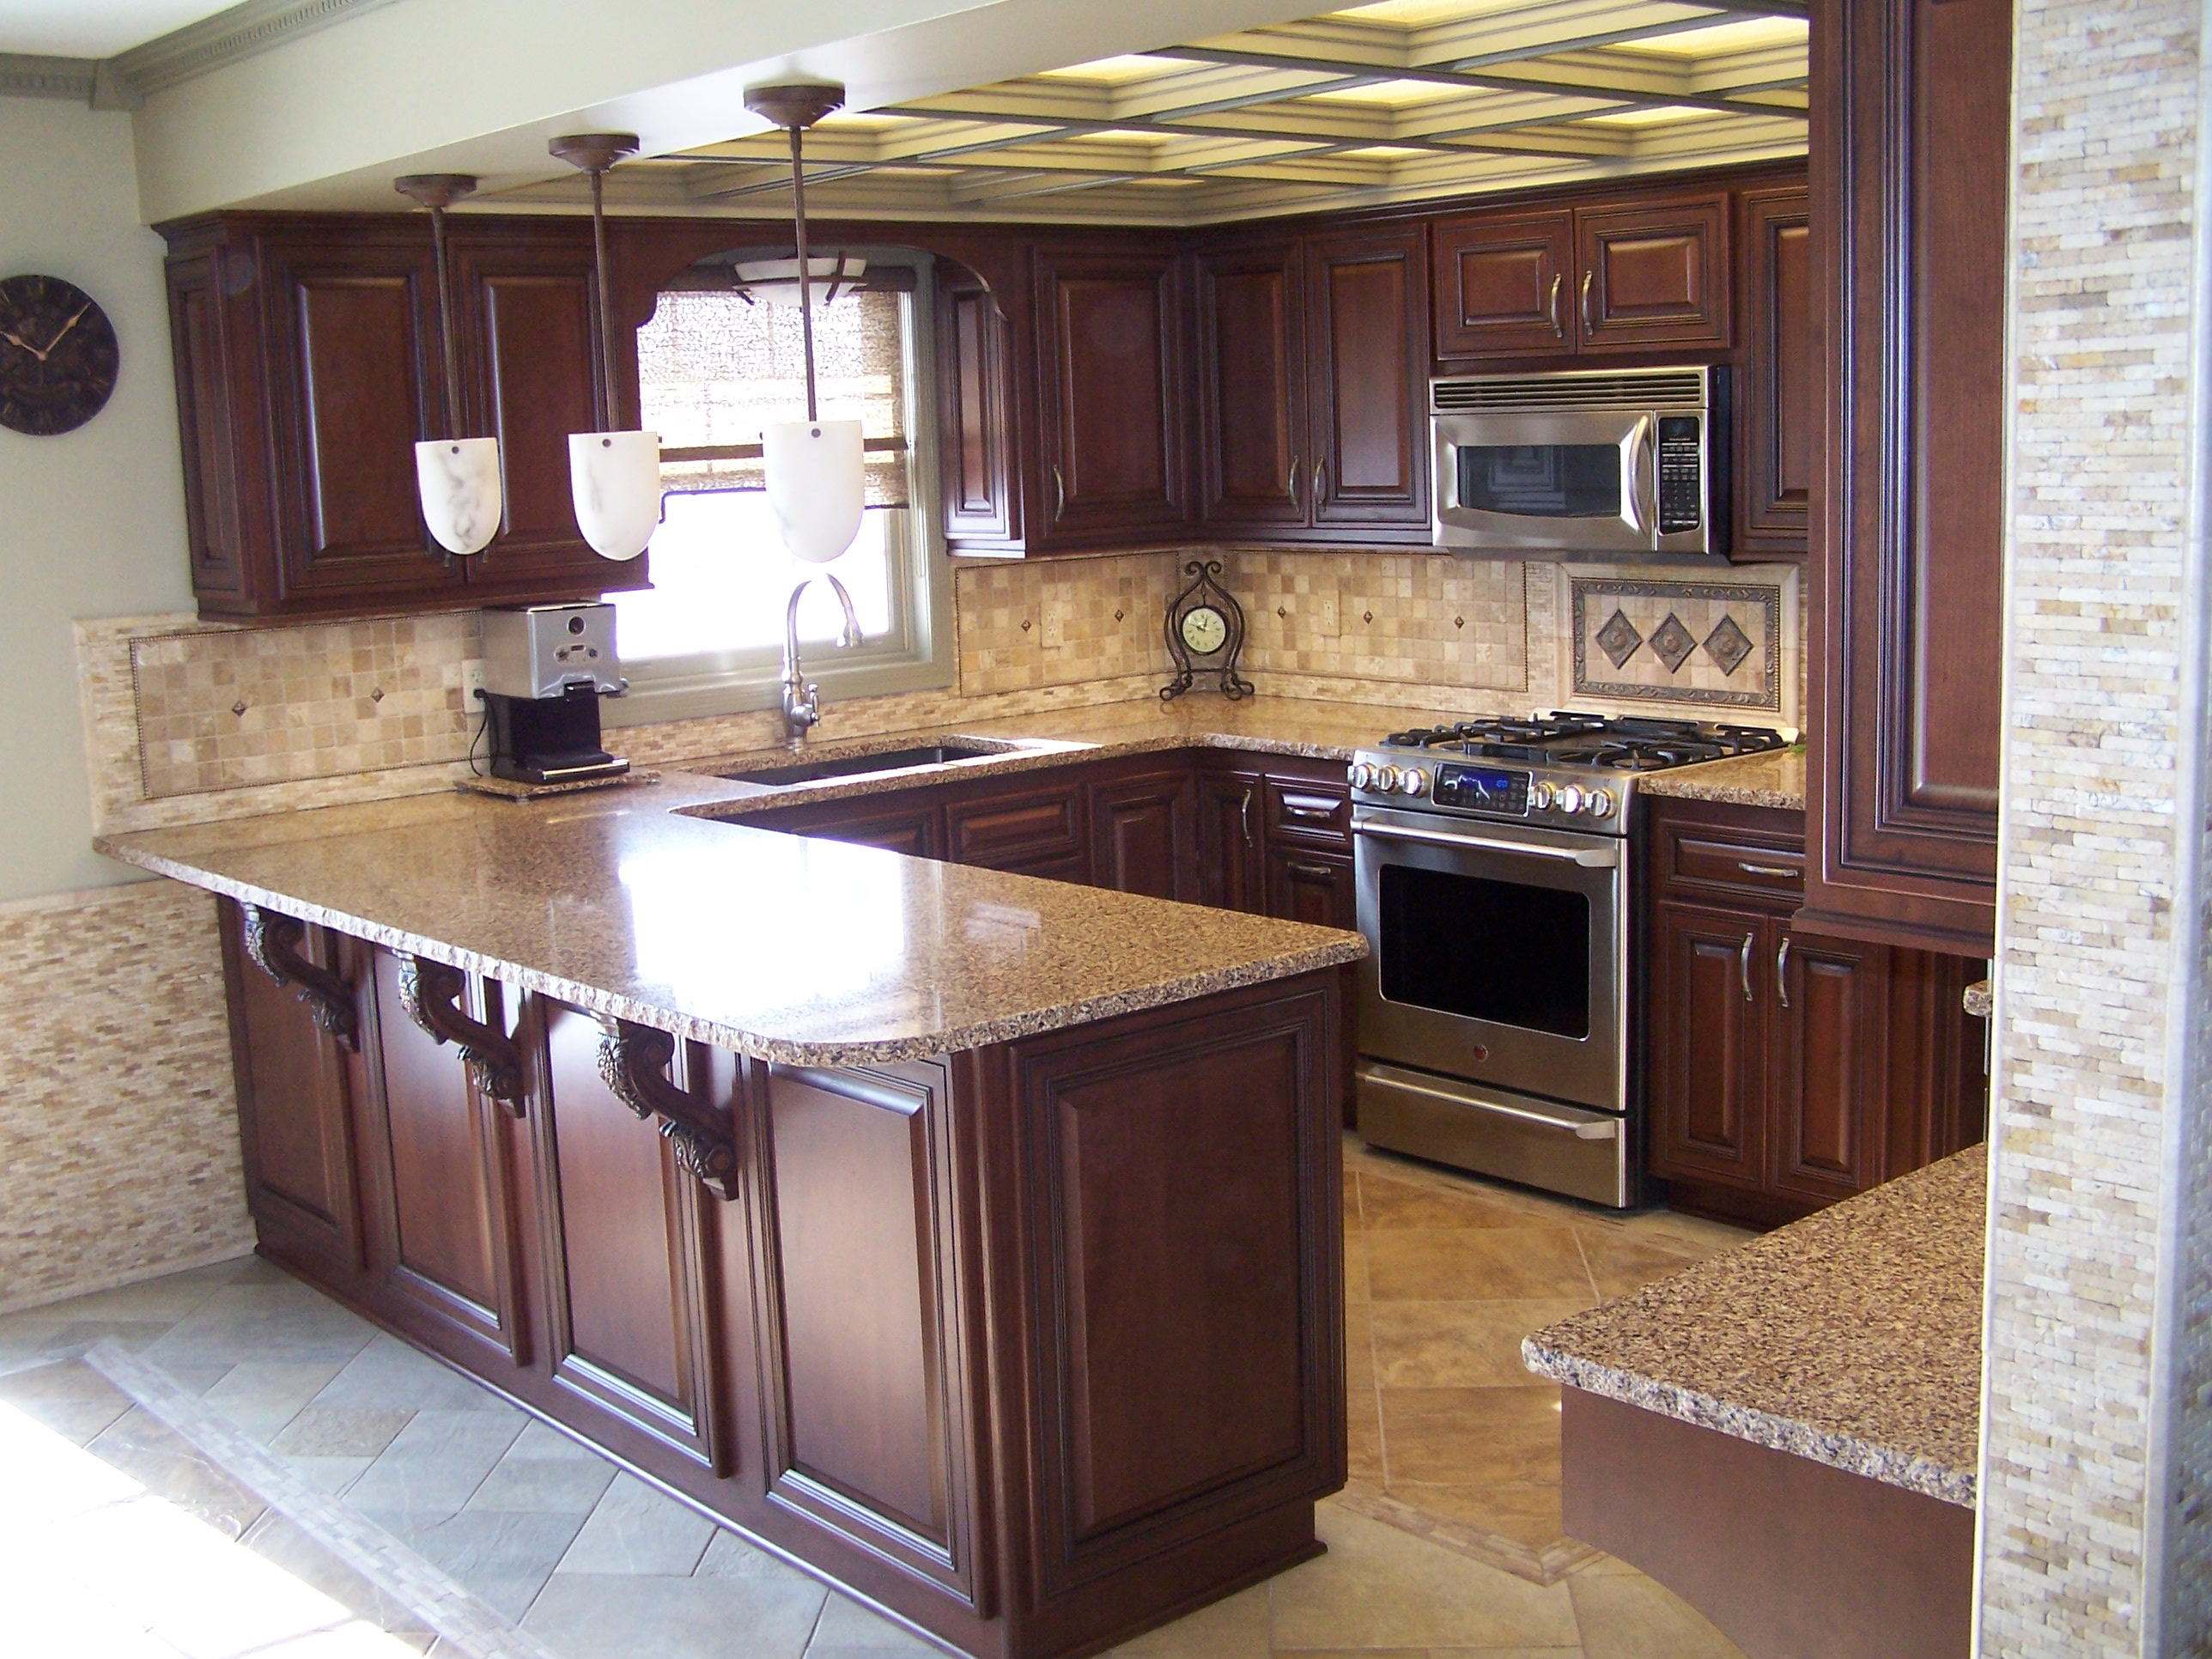 Local do it yourselfers create dream kitchen with help for Local kitchen remodeling